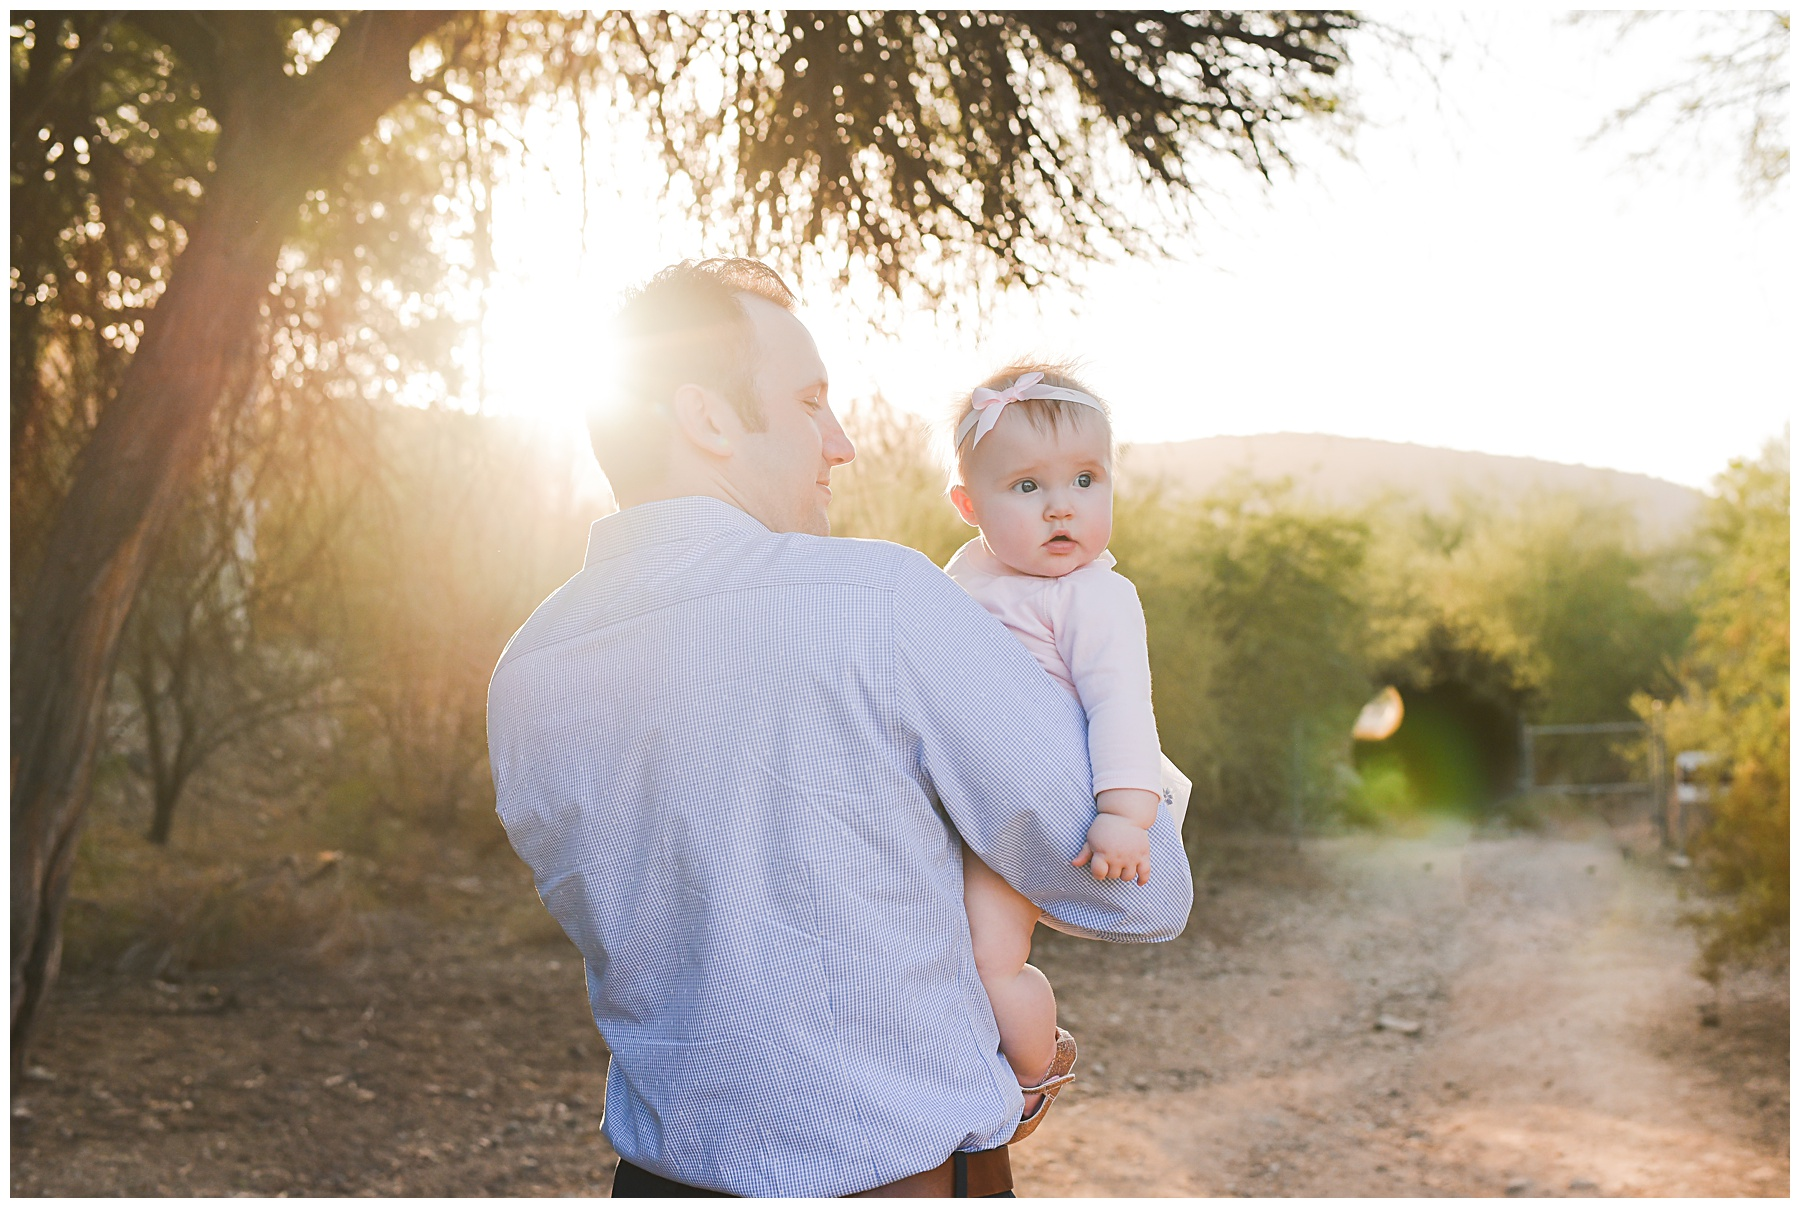 Daddy with baby girl over his shoulder | Sweetlife Photography